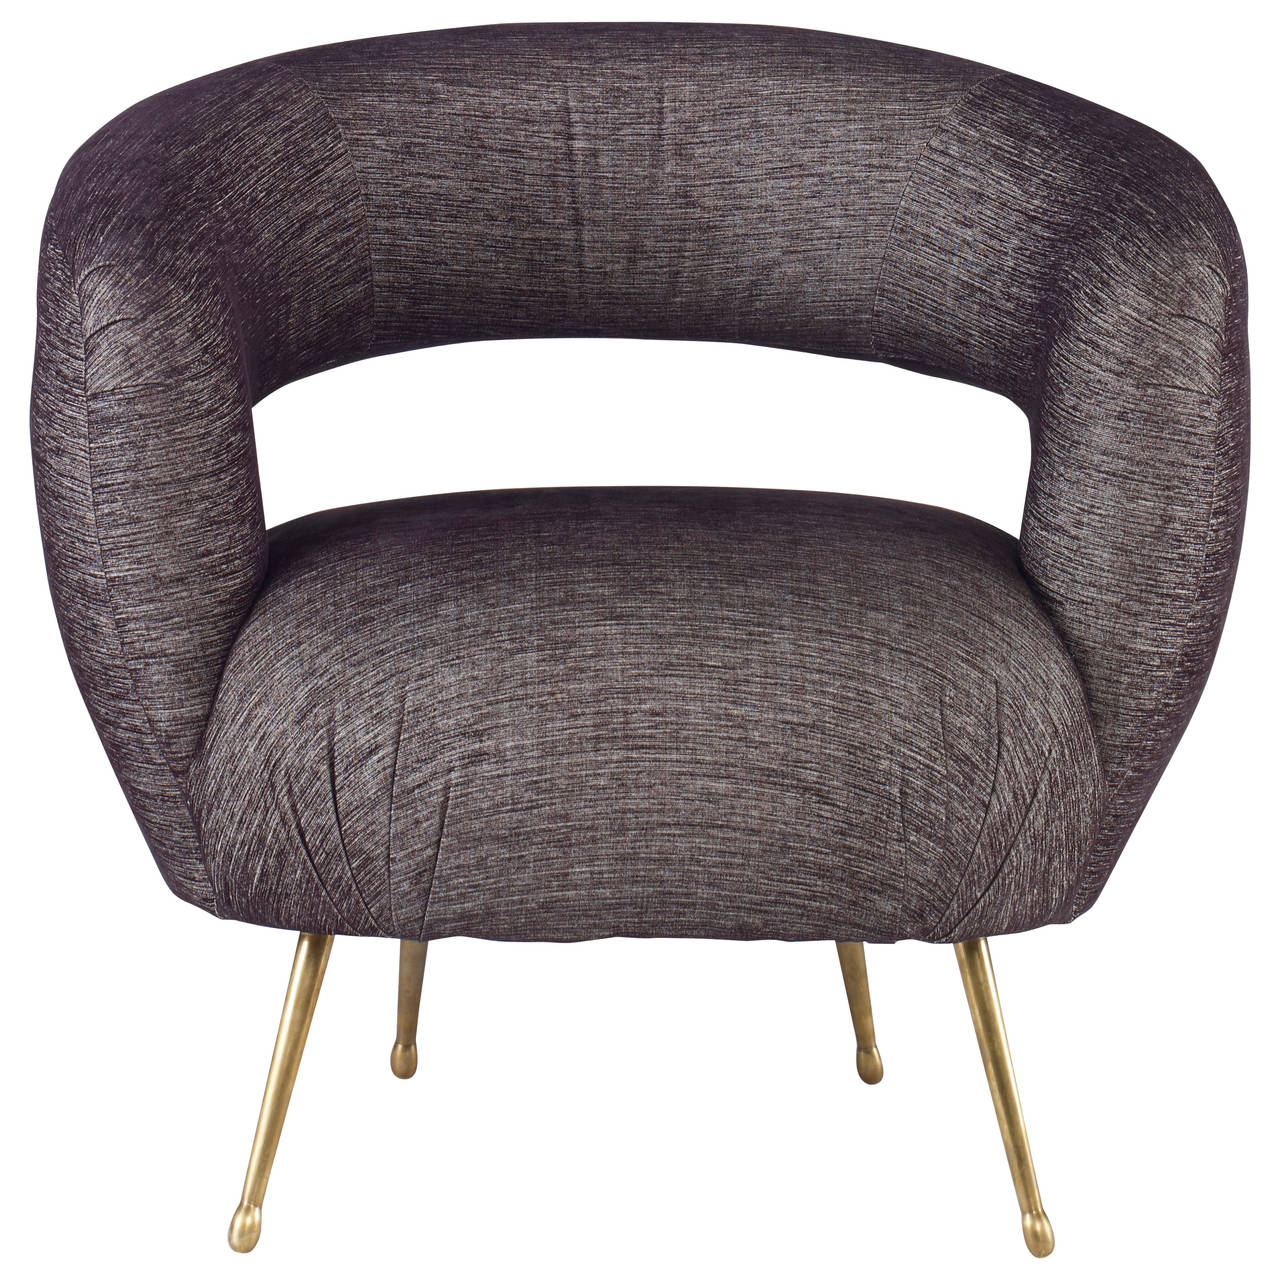 Kelly Wearstler Laurel Lounge Chair At 1stdibs